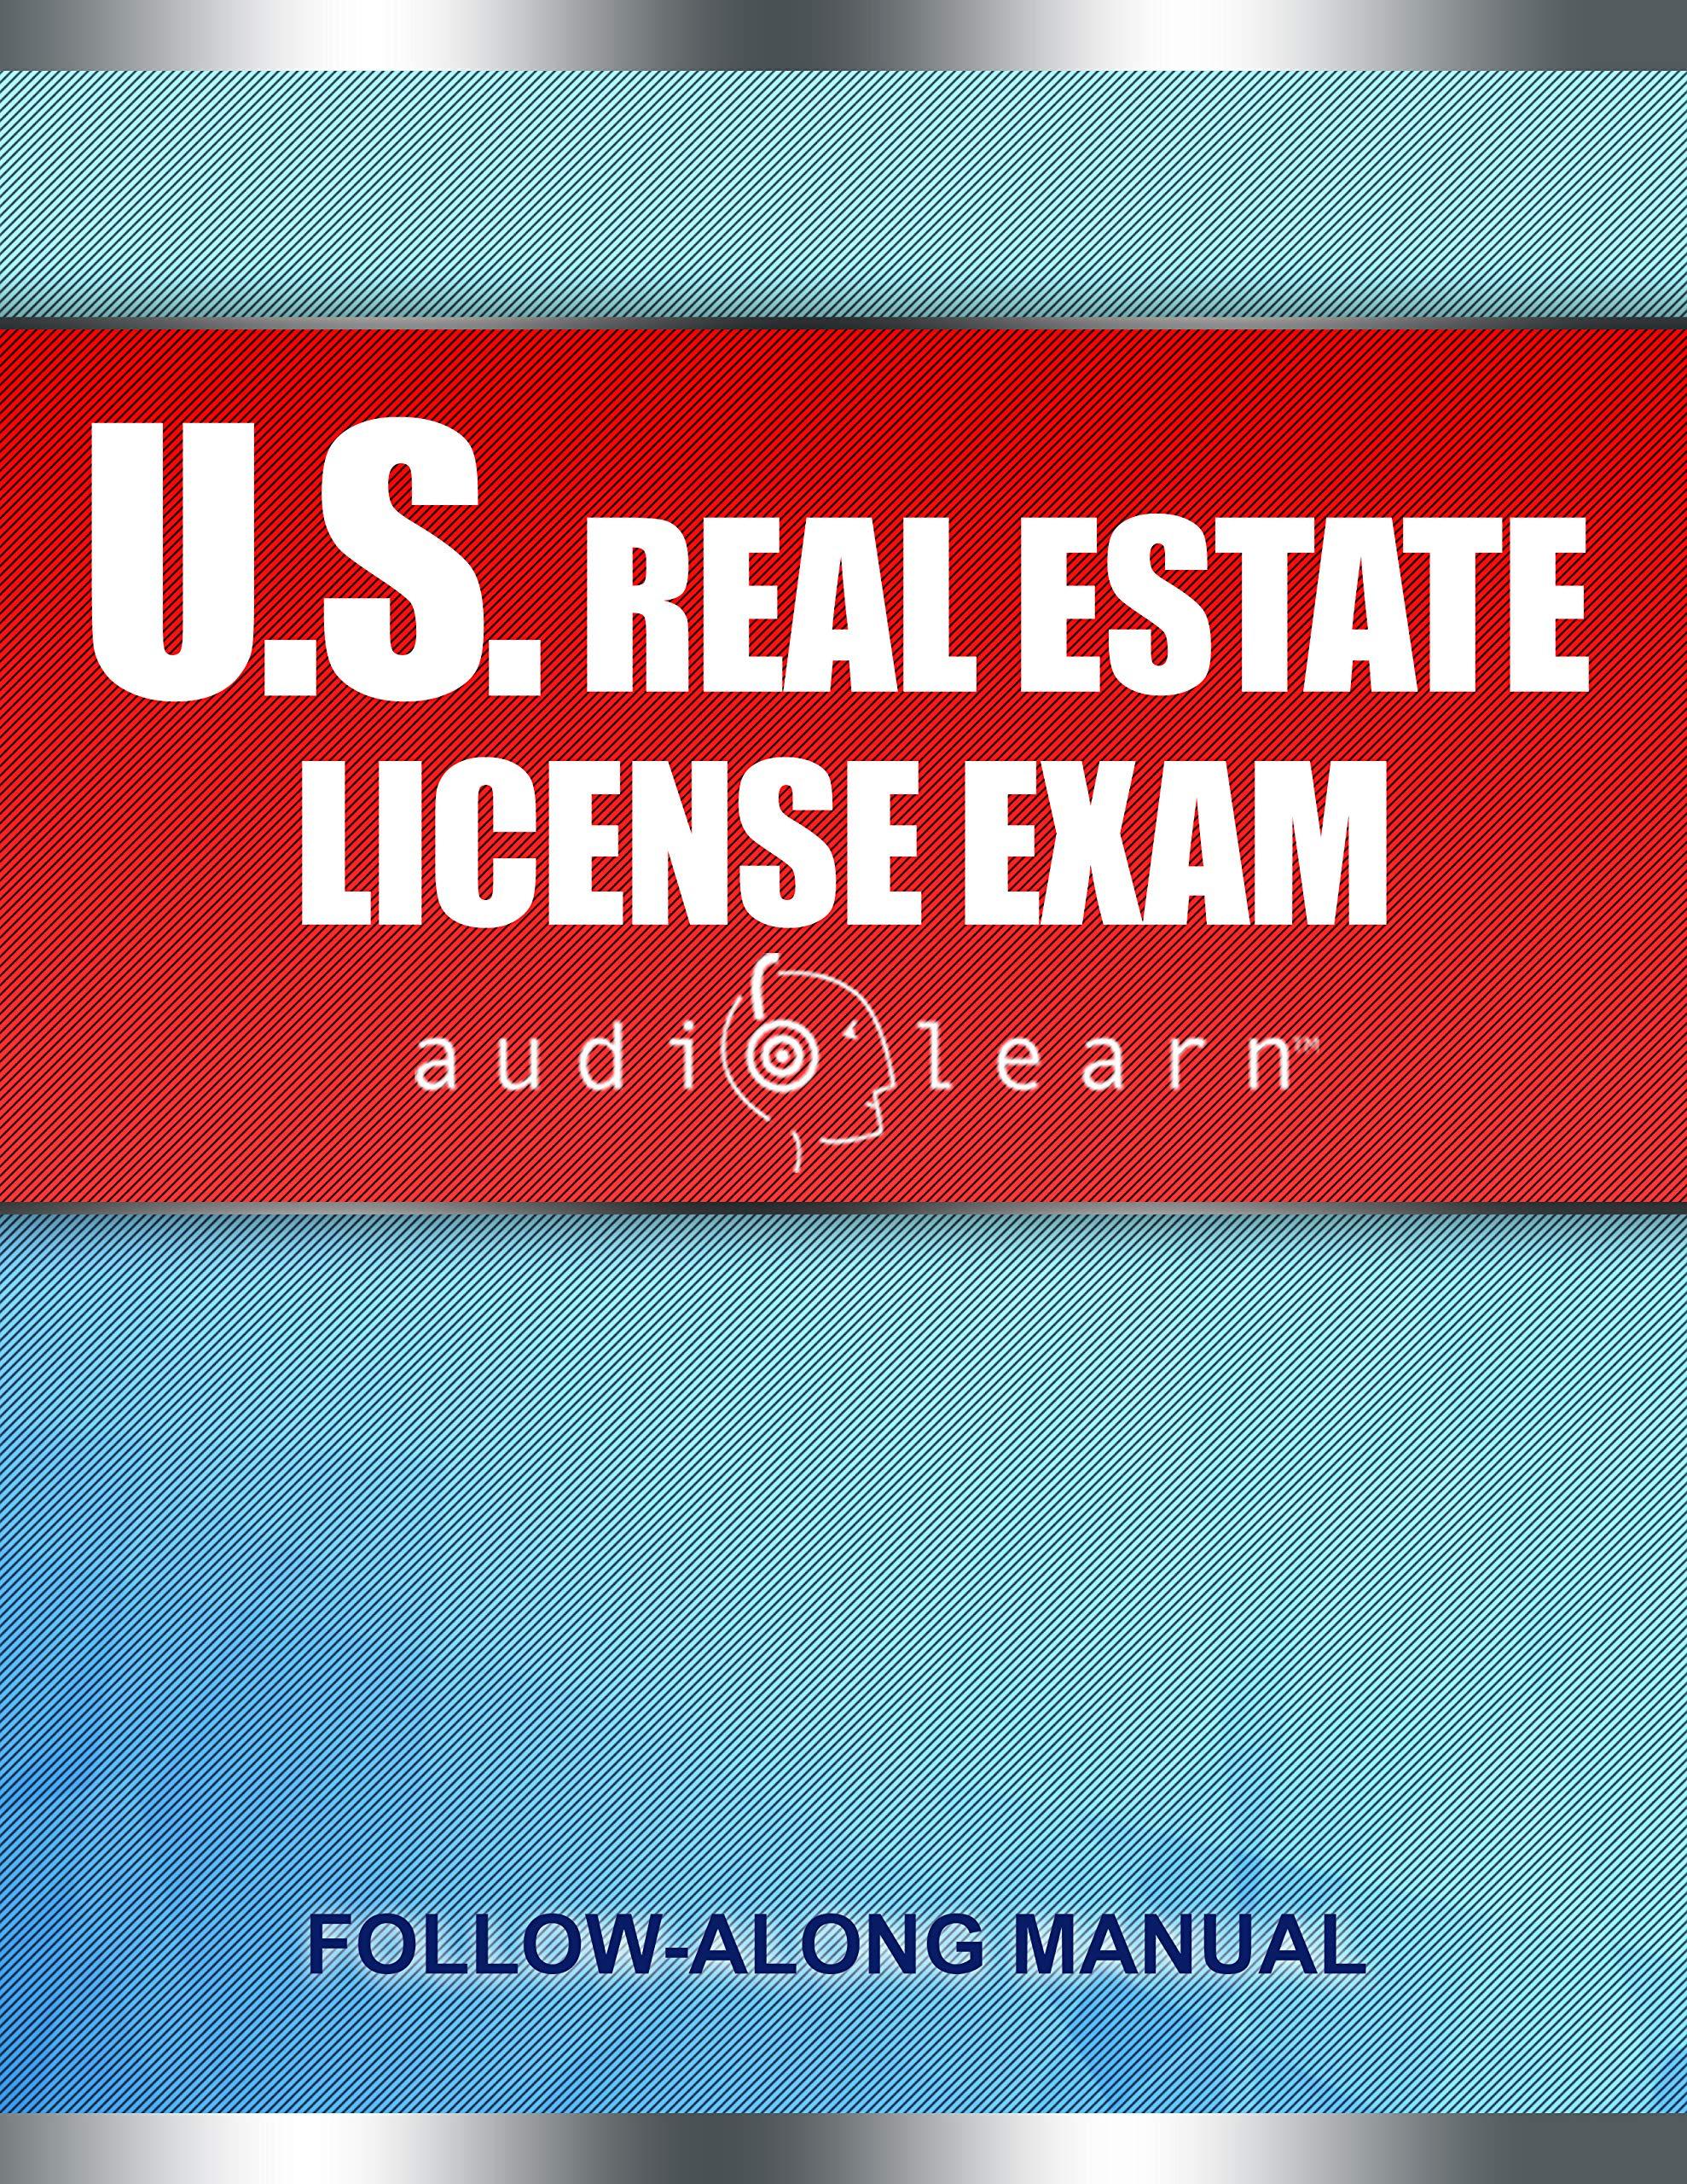 US Real Estate License Exam AudioLearn: Complete Audio Review for the National Portion of the US Real Estate License Examination!